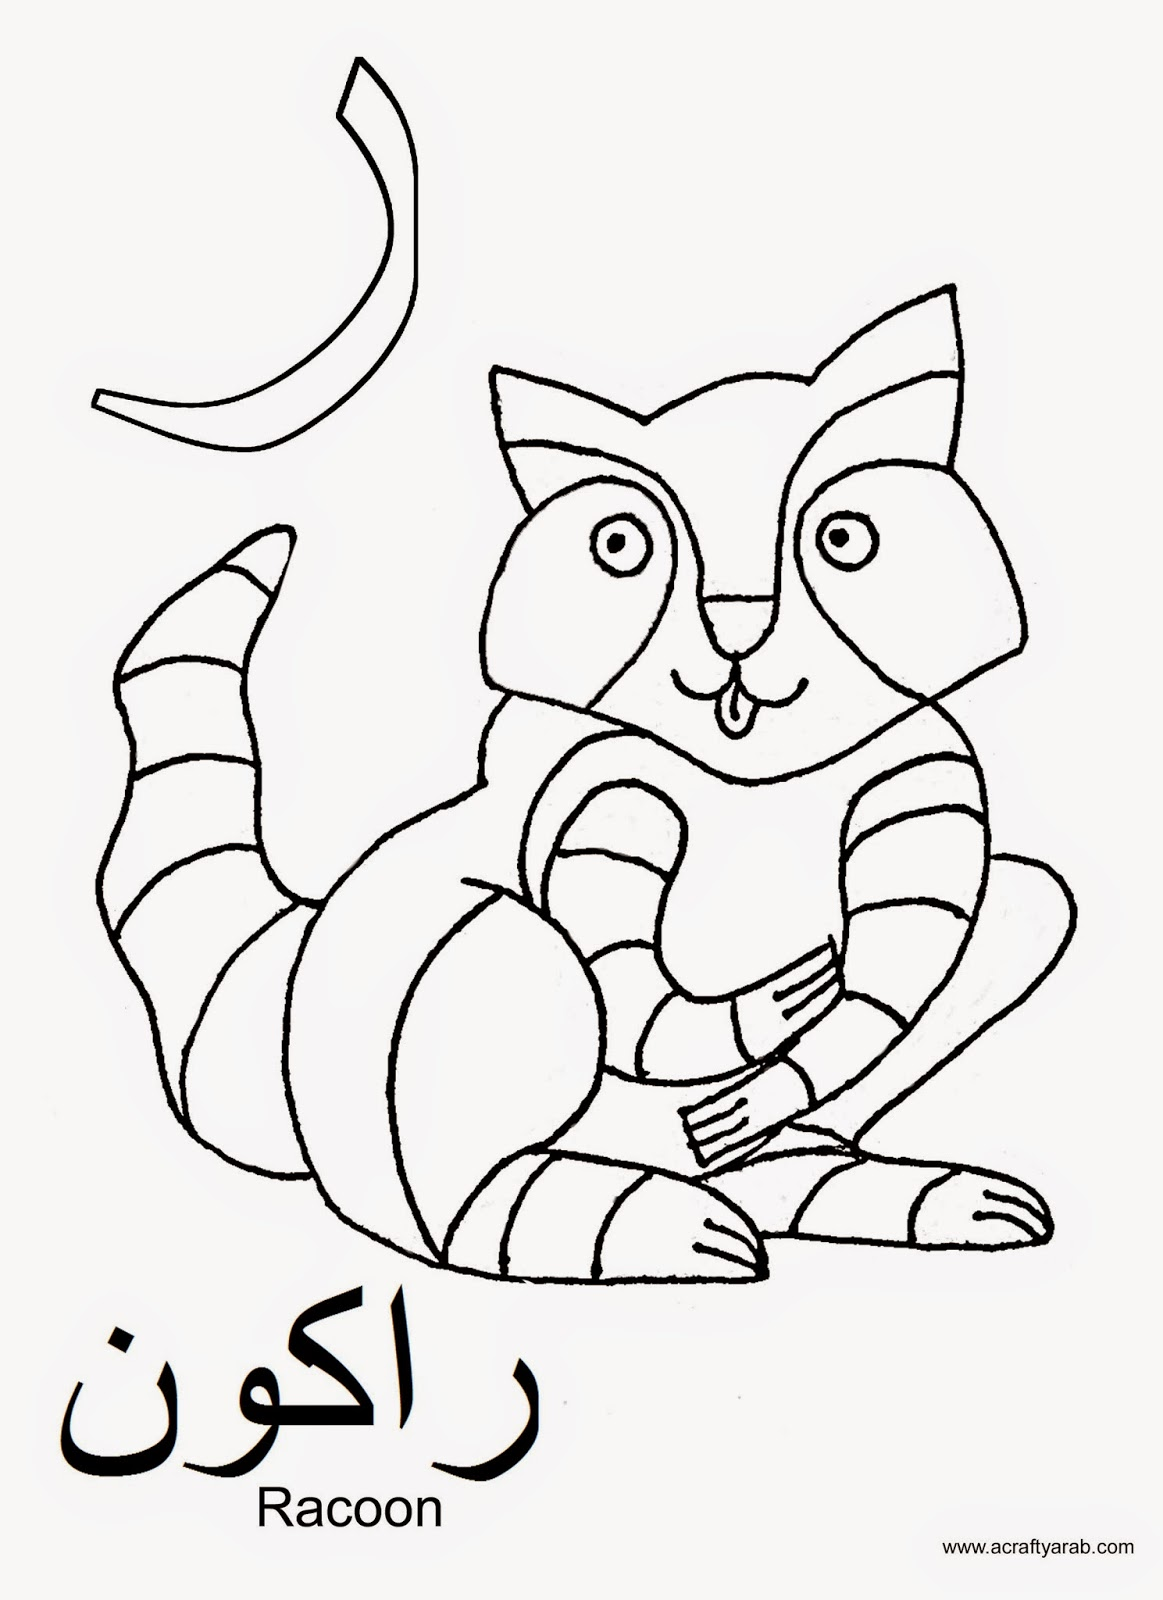 Arabic alphabet coloring pages ra is for racoon a for Alphabet pages to color